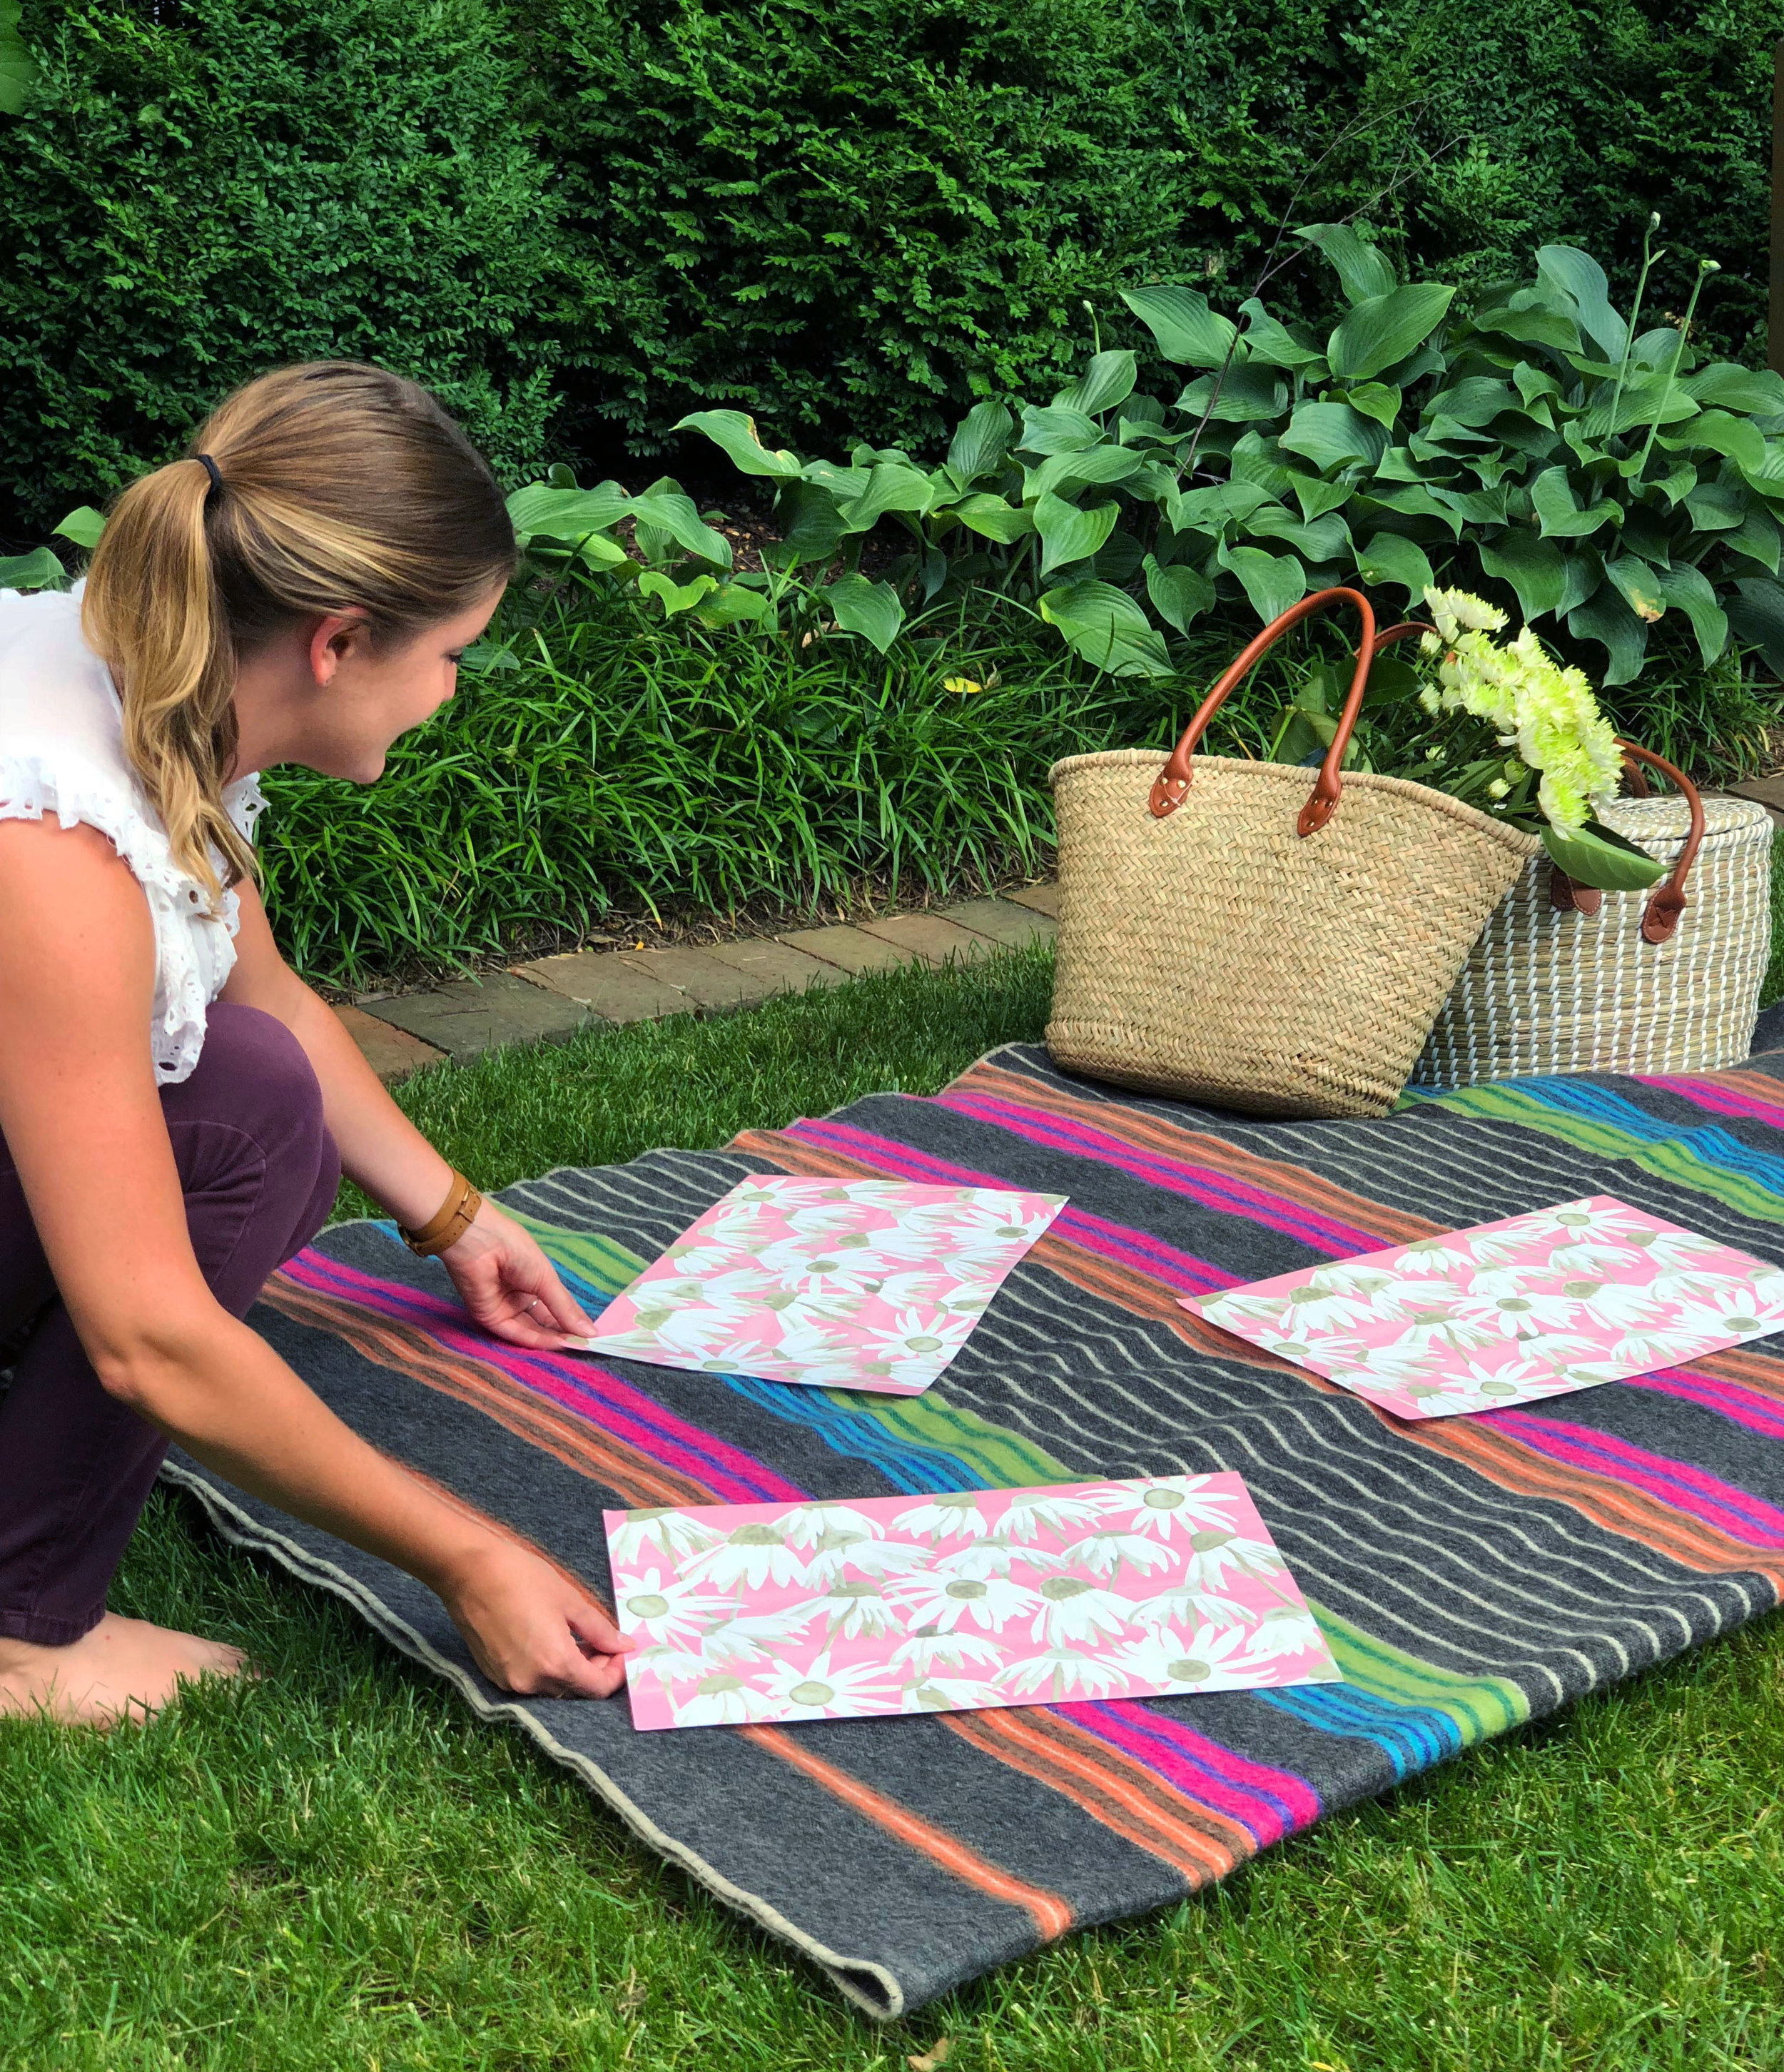 lucy-grymes-blog-picture-perfect-picnic-placemats.jpg